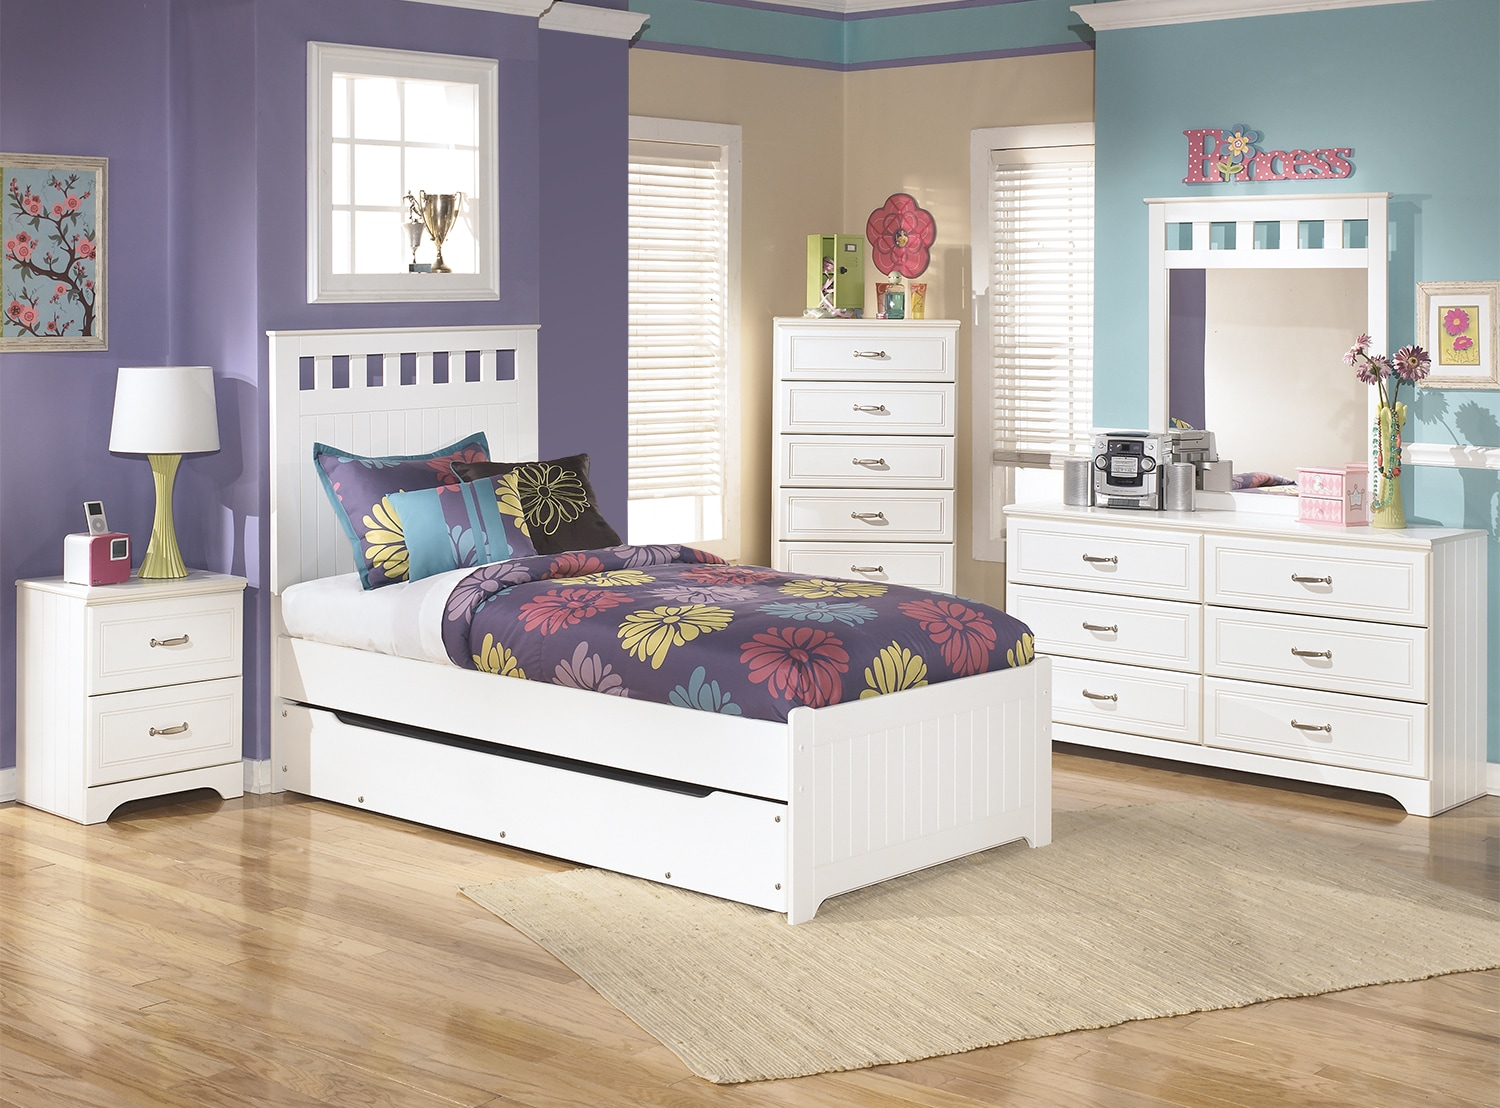 Kids Furniture - Lulu 7-Piece Twin Panel Bed Package with Trundle